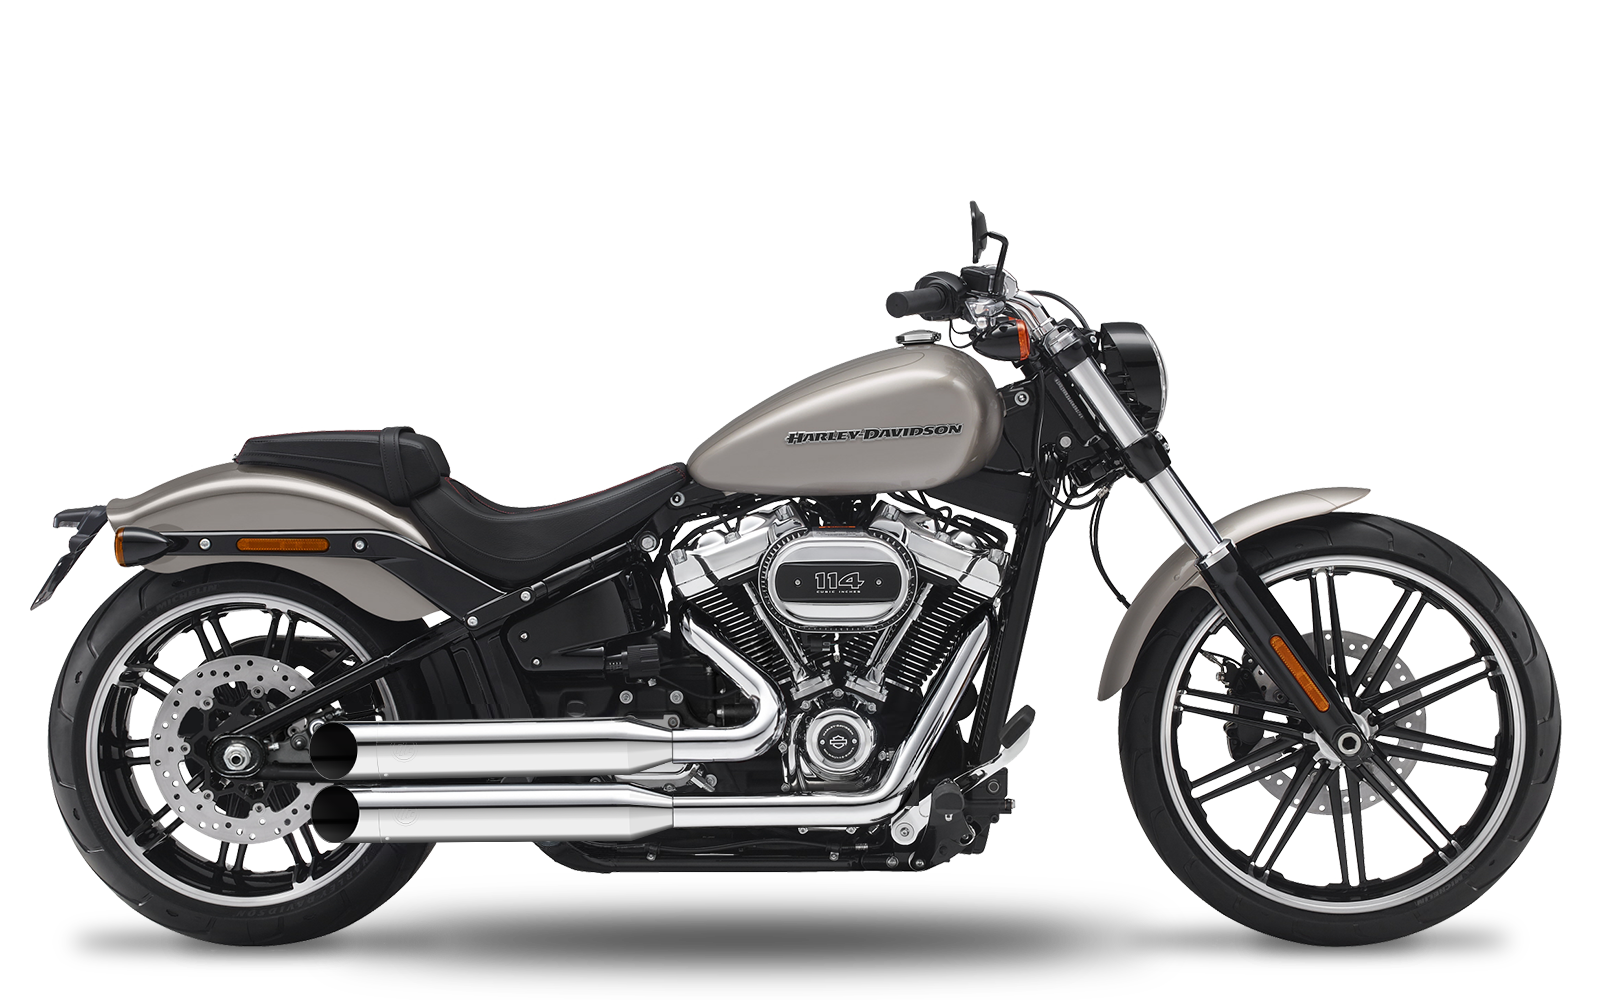 Softail - Breakout 114 / S - ME114 - 2018-2020 - Complete systems